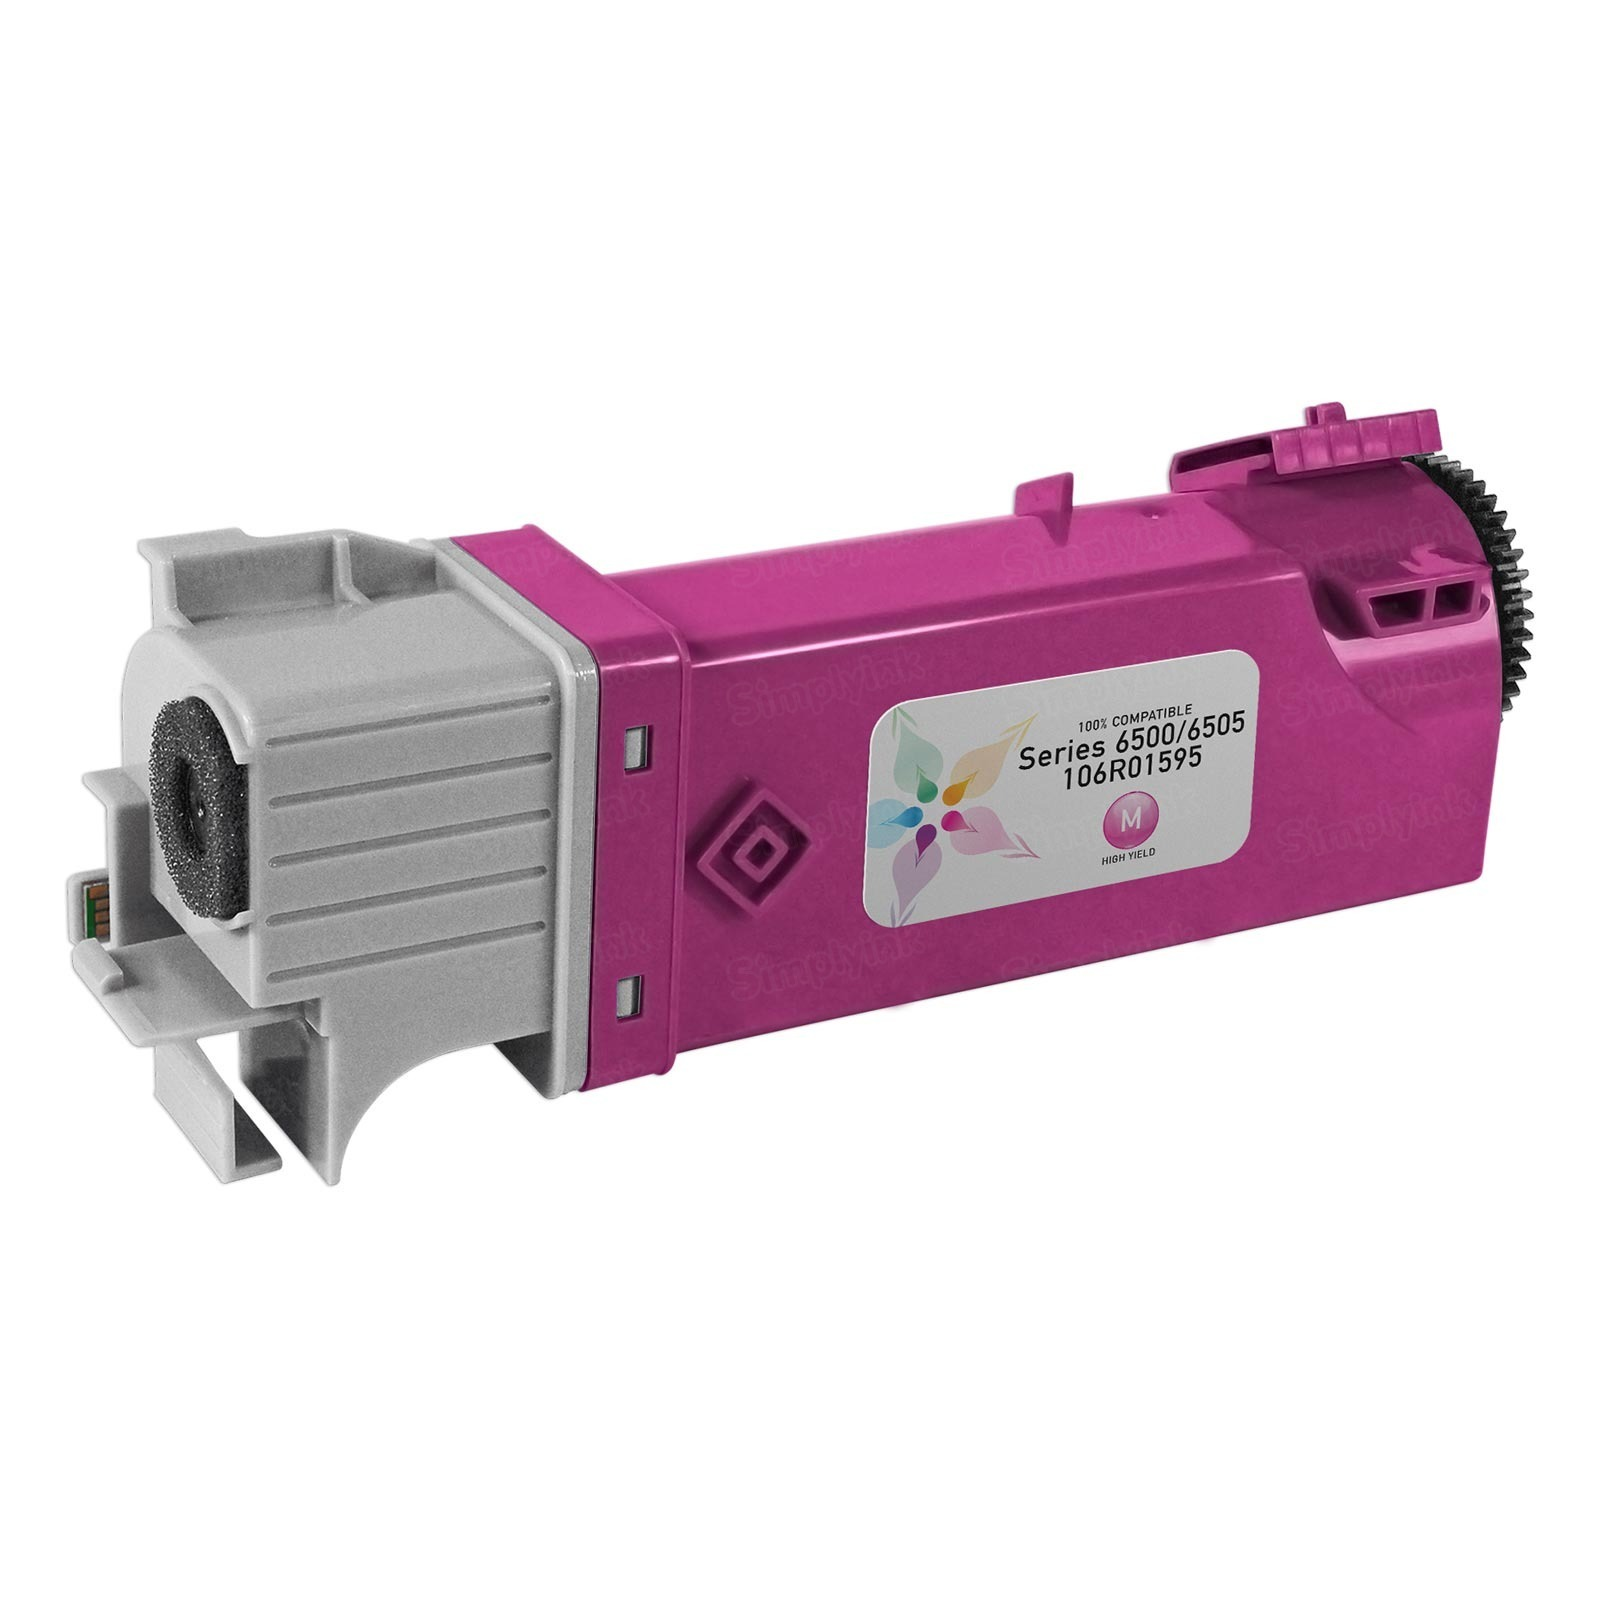 Compatible Xerox Phaser 6500/WorkCentre 6505 HY Magenta Toner